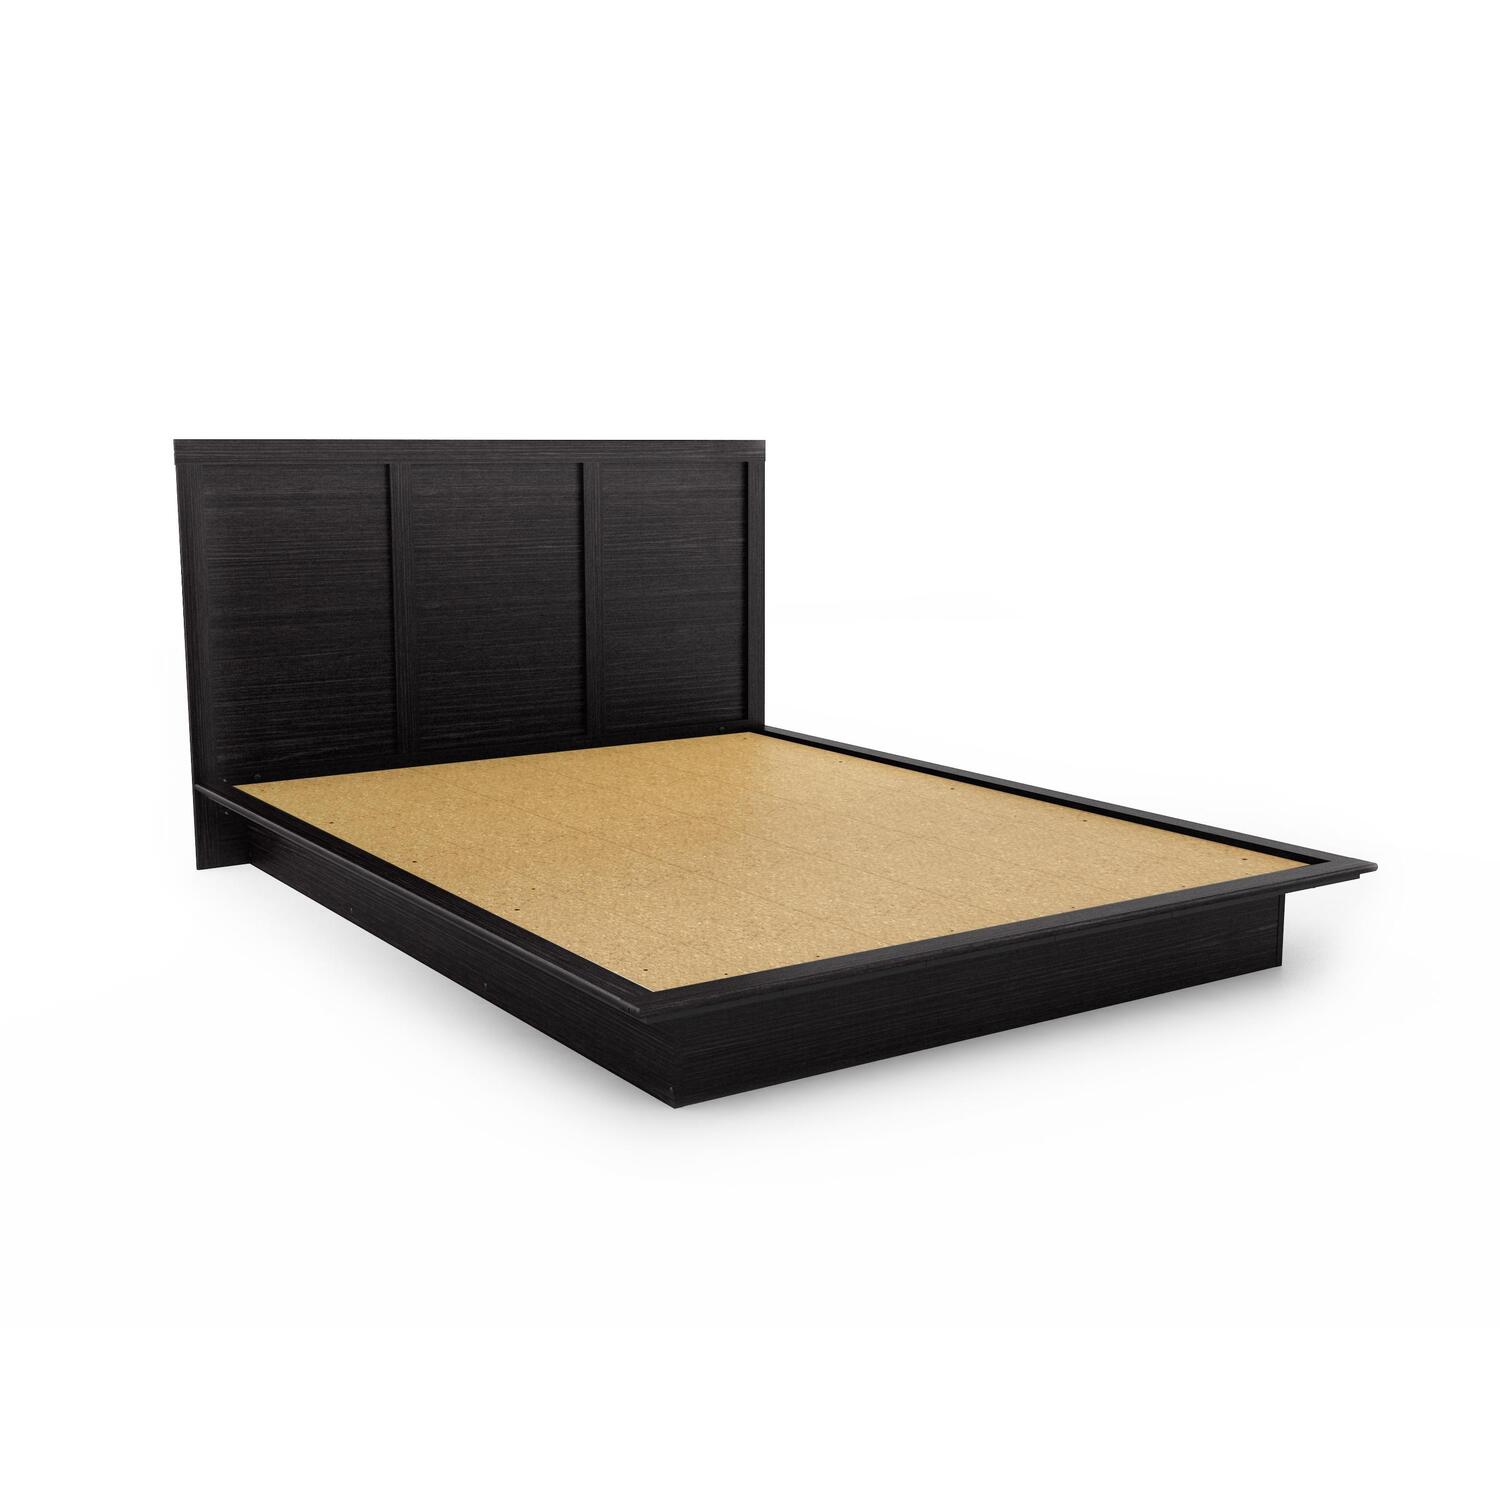 Permalink to diy platform bed plans – how to build a platform bed